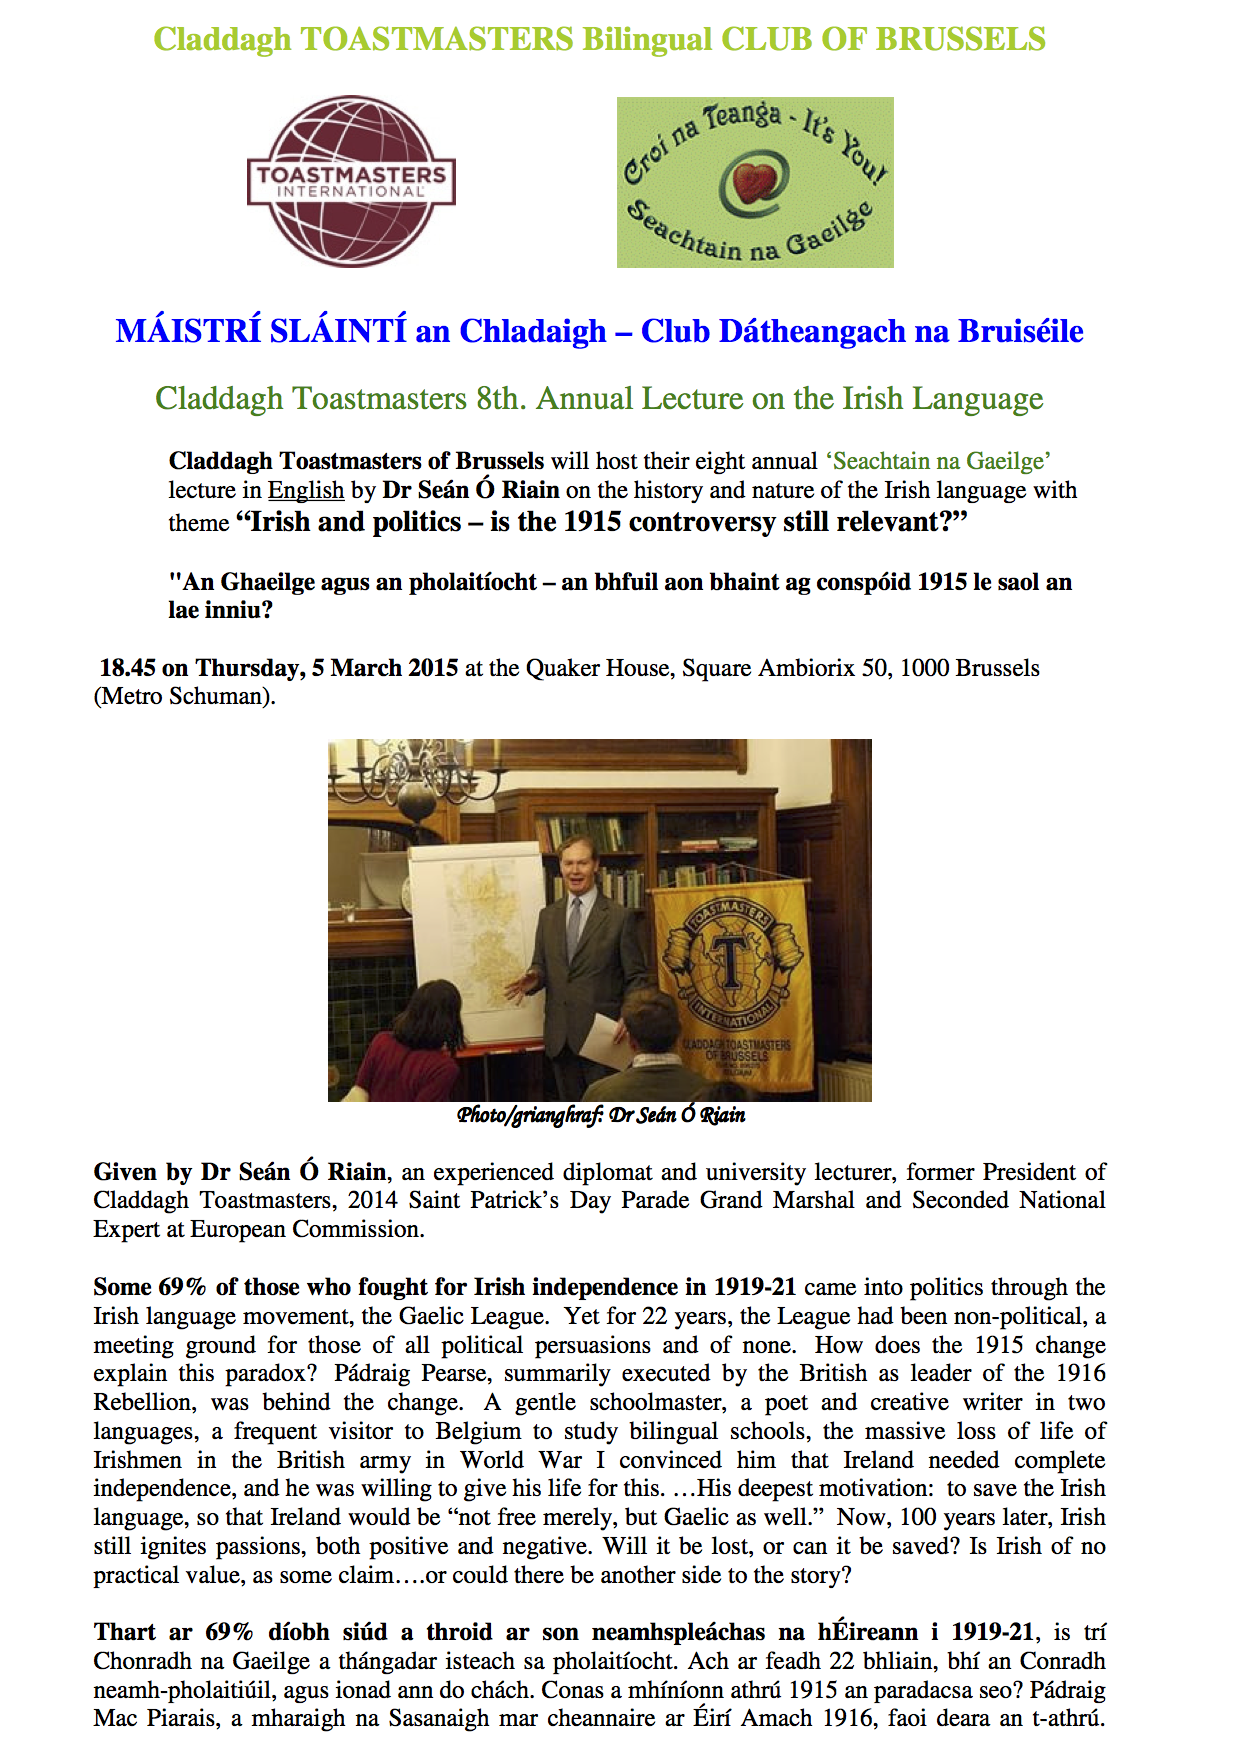 Claddagh 8th lecture-poster content 5 March 2015 PNG